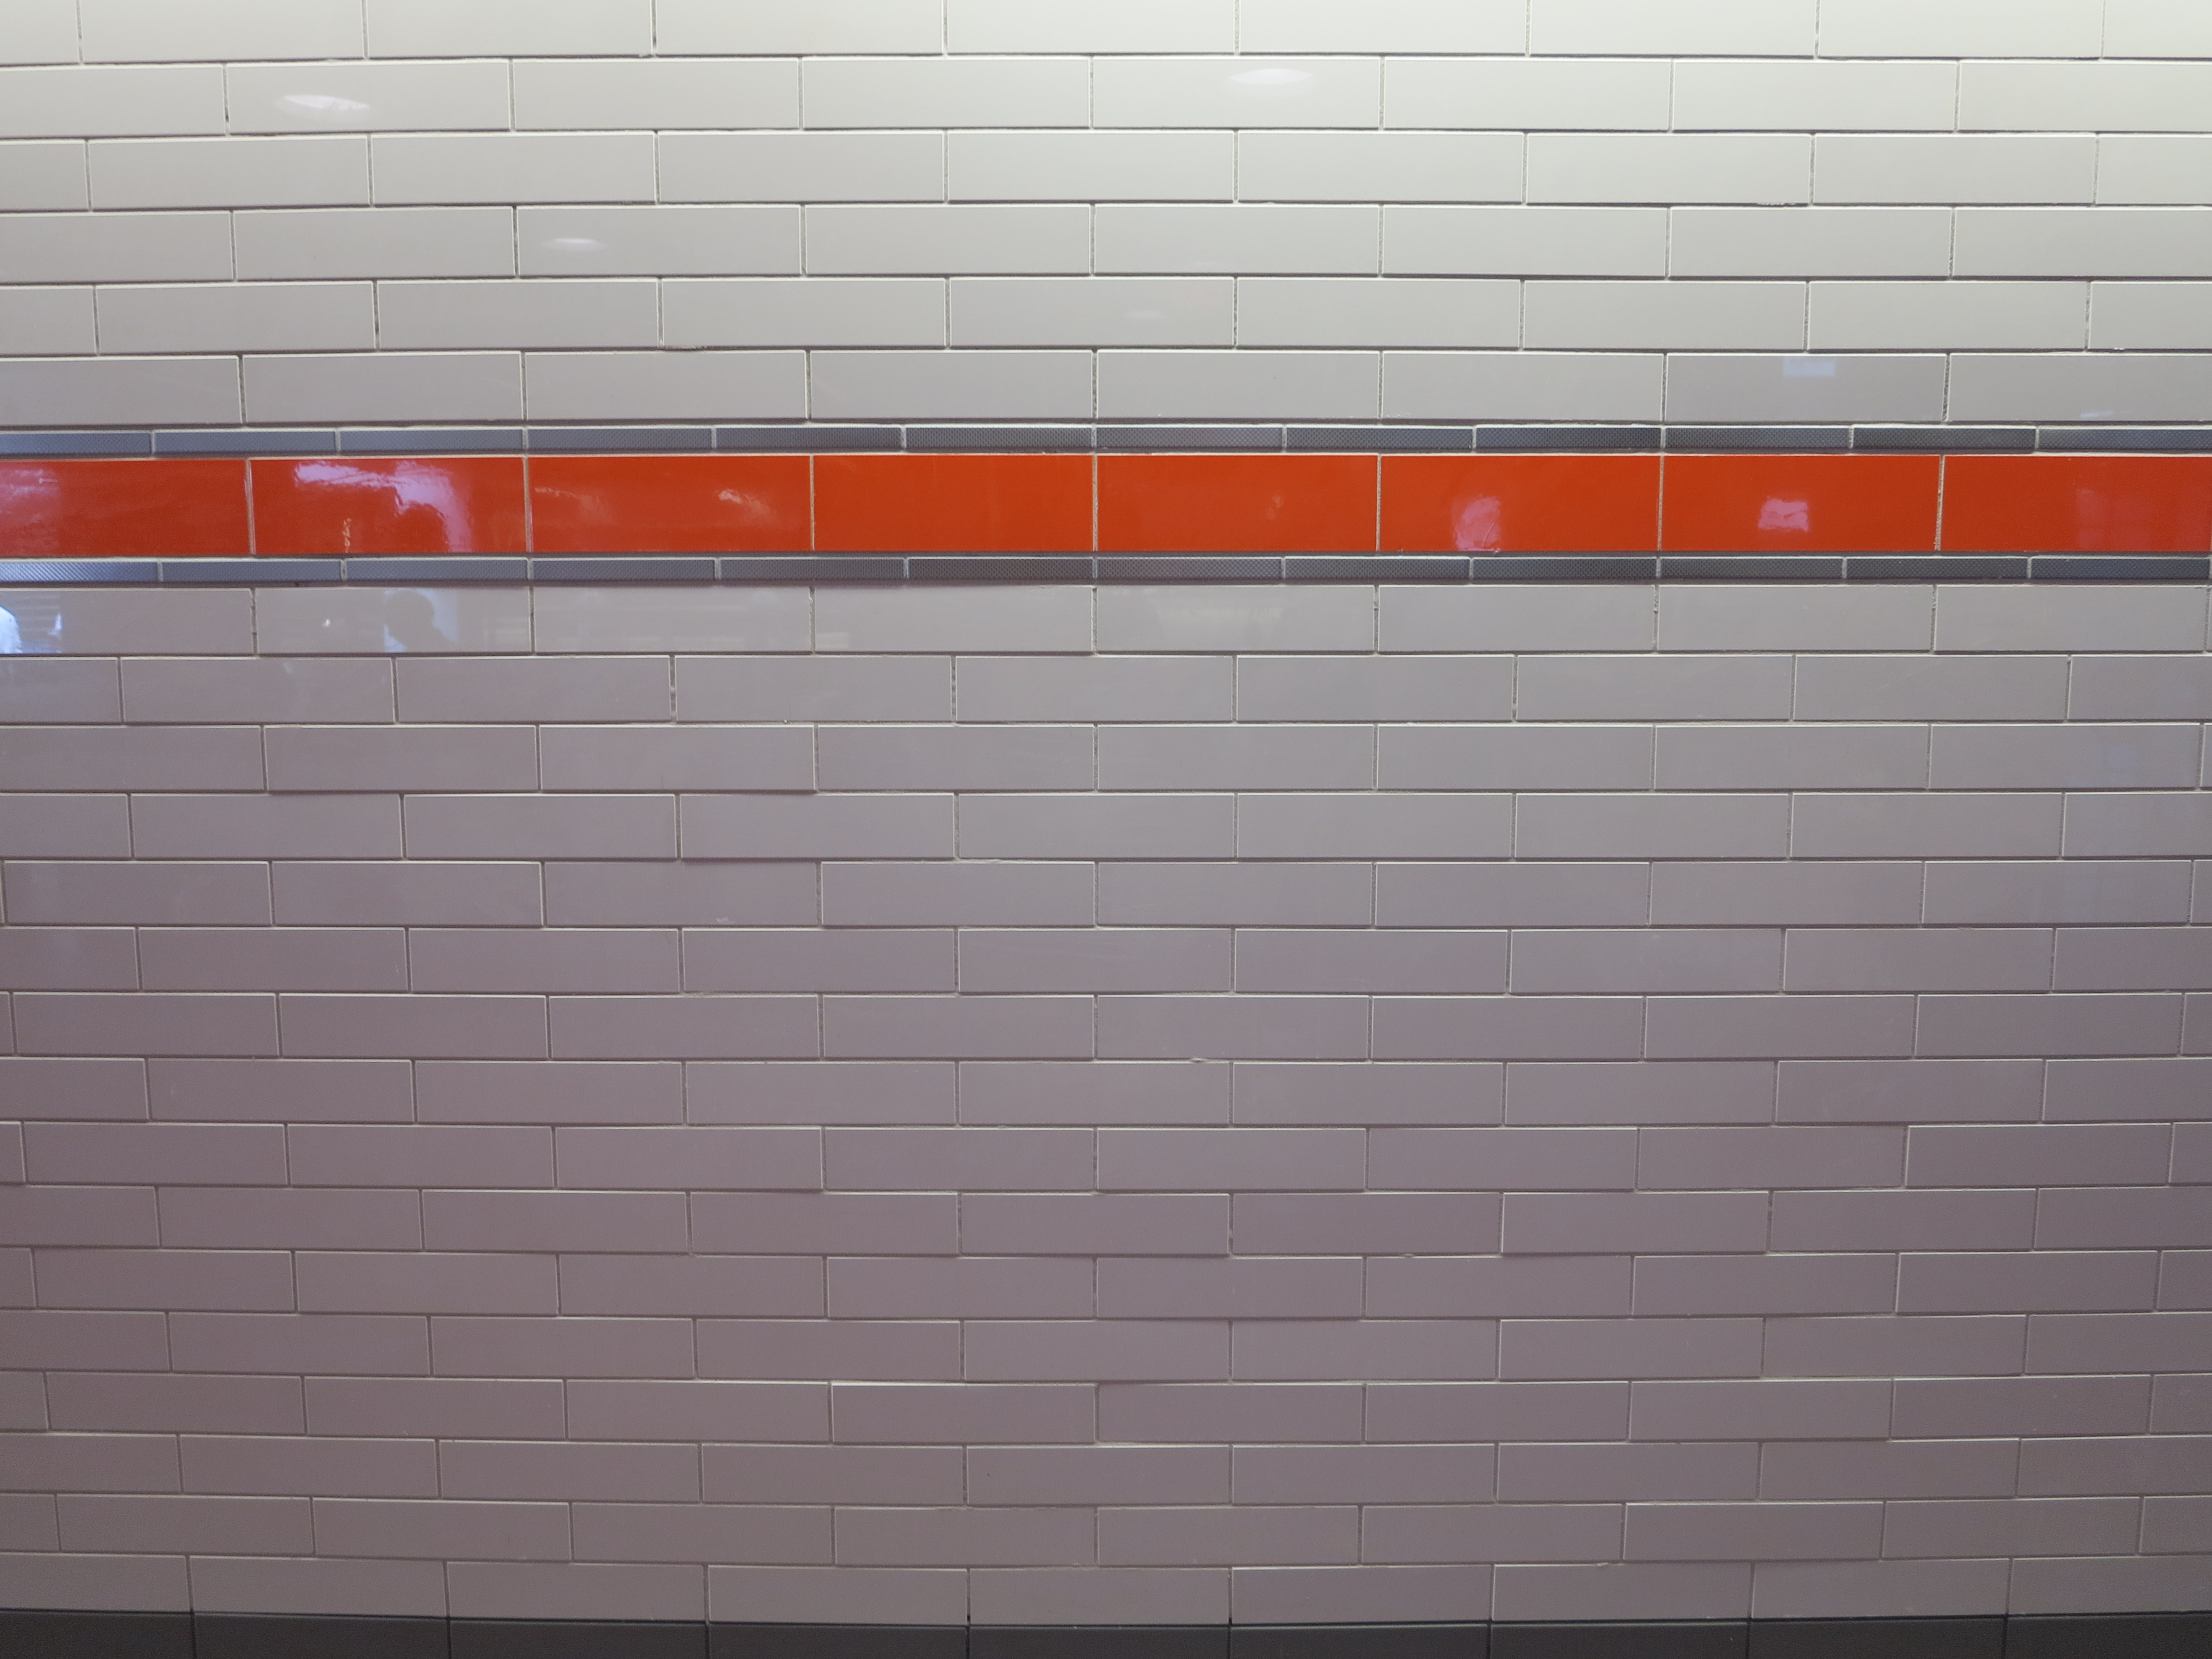 SEPTA's newly tiled City Hall Station wall